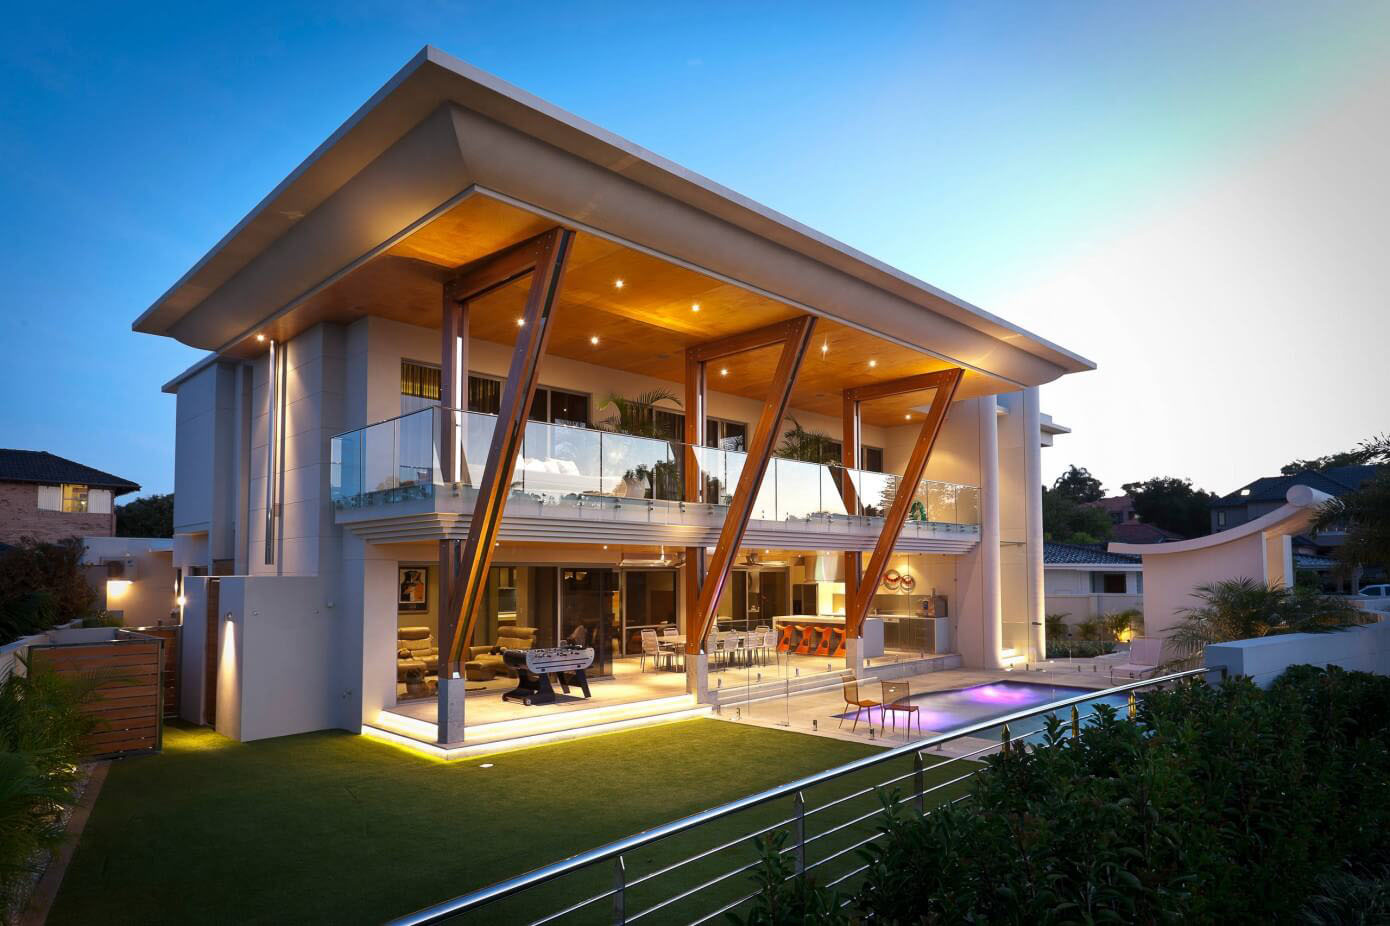 Ultra modern home in perth with large roof idesignarch for Super modern house design